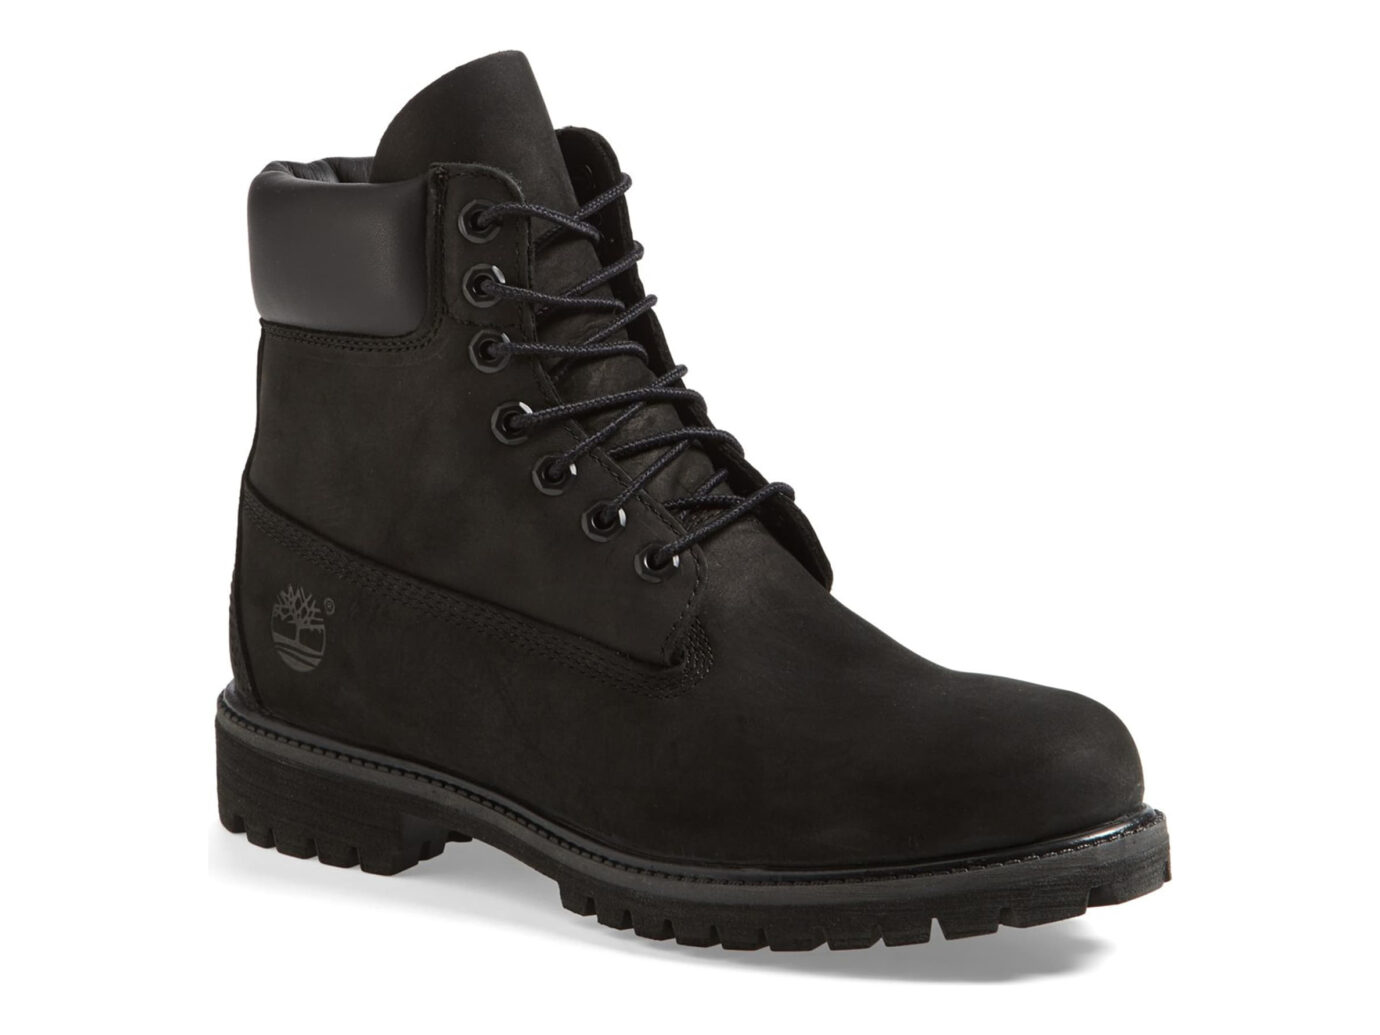 Timberland 6 Inch Classic Waterproof Boot